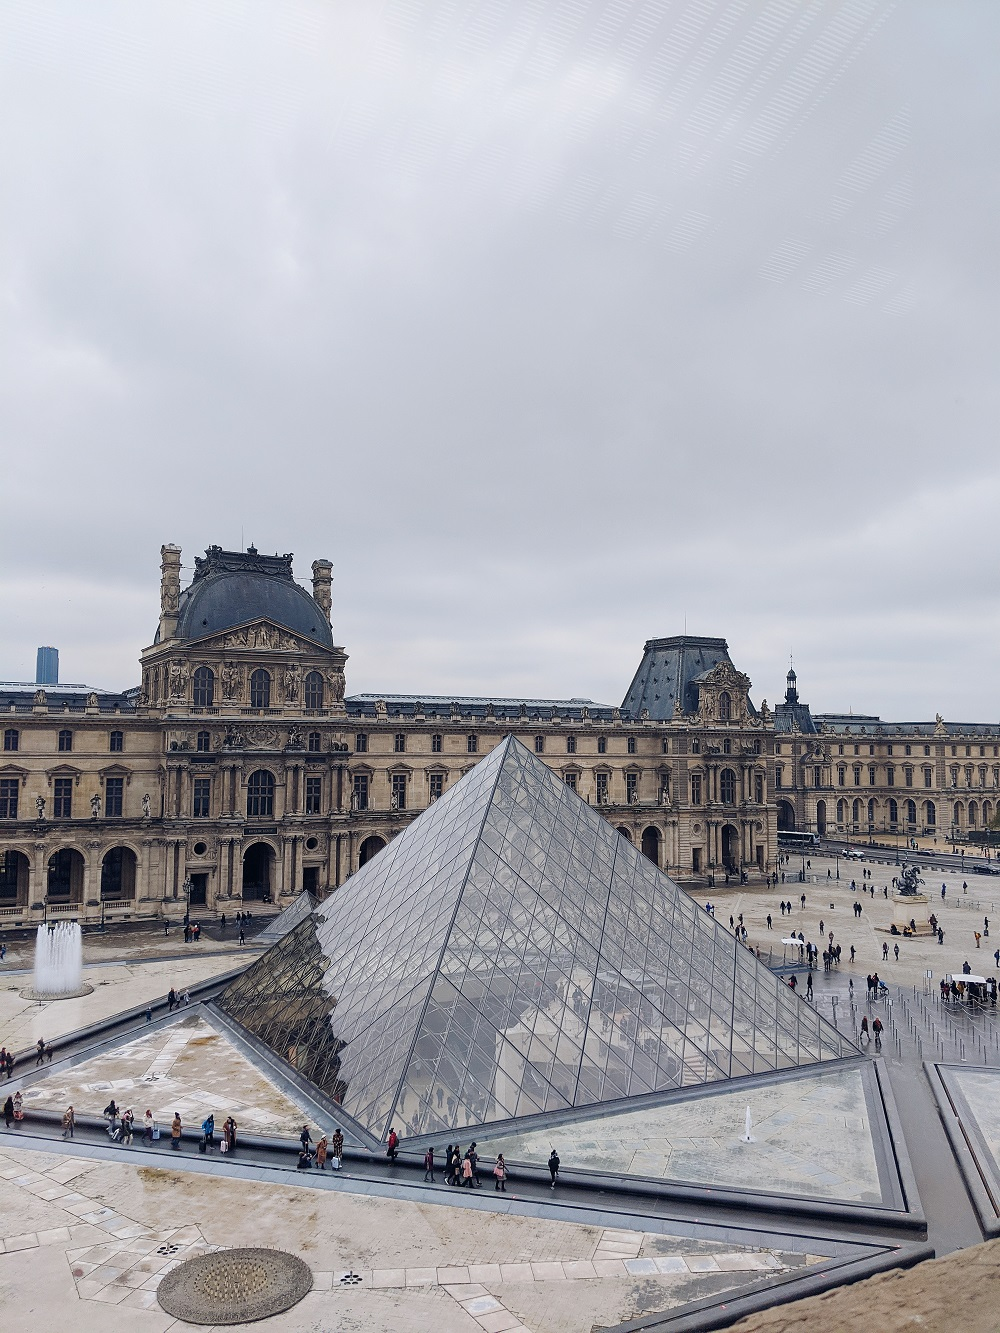 Trying my luck at the Louvre and finally see the famous pyramid